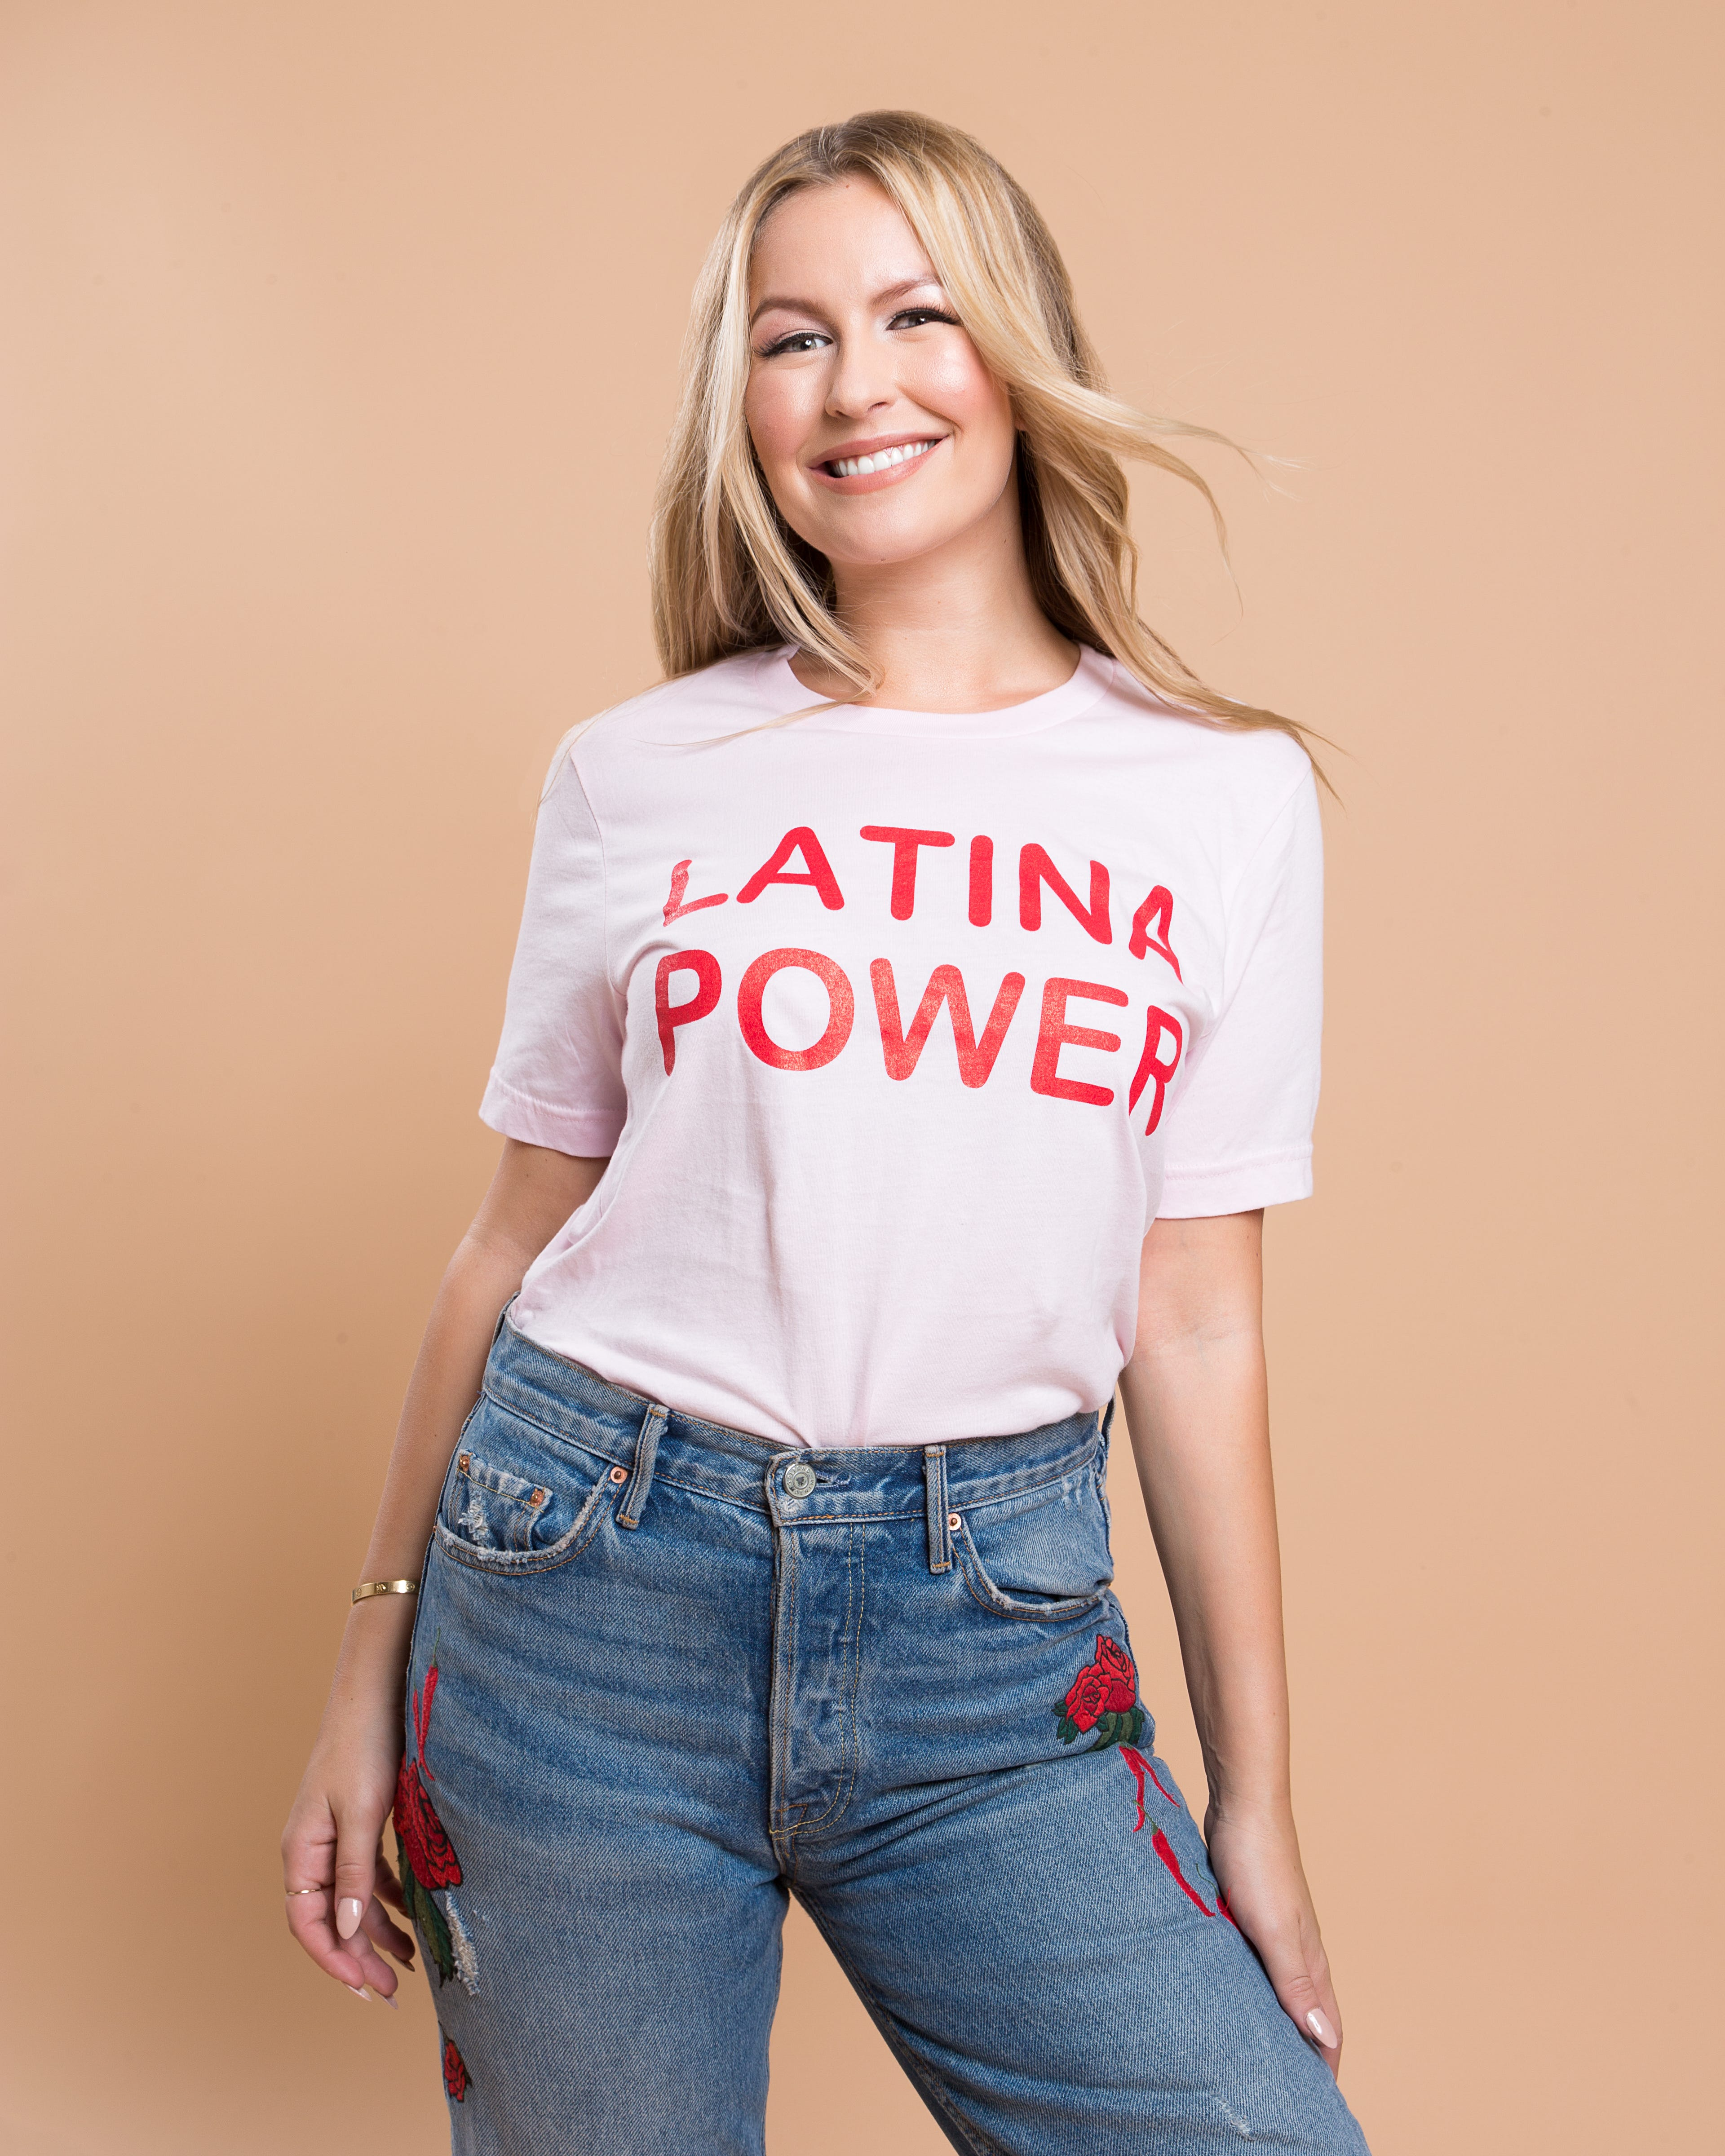 stereotyping latin women Latina/o stereotyping and empowerment 81 likes our mission is to inform/raise awareness on latina/o stereotyping more specifically focusing on how.